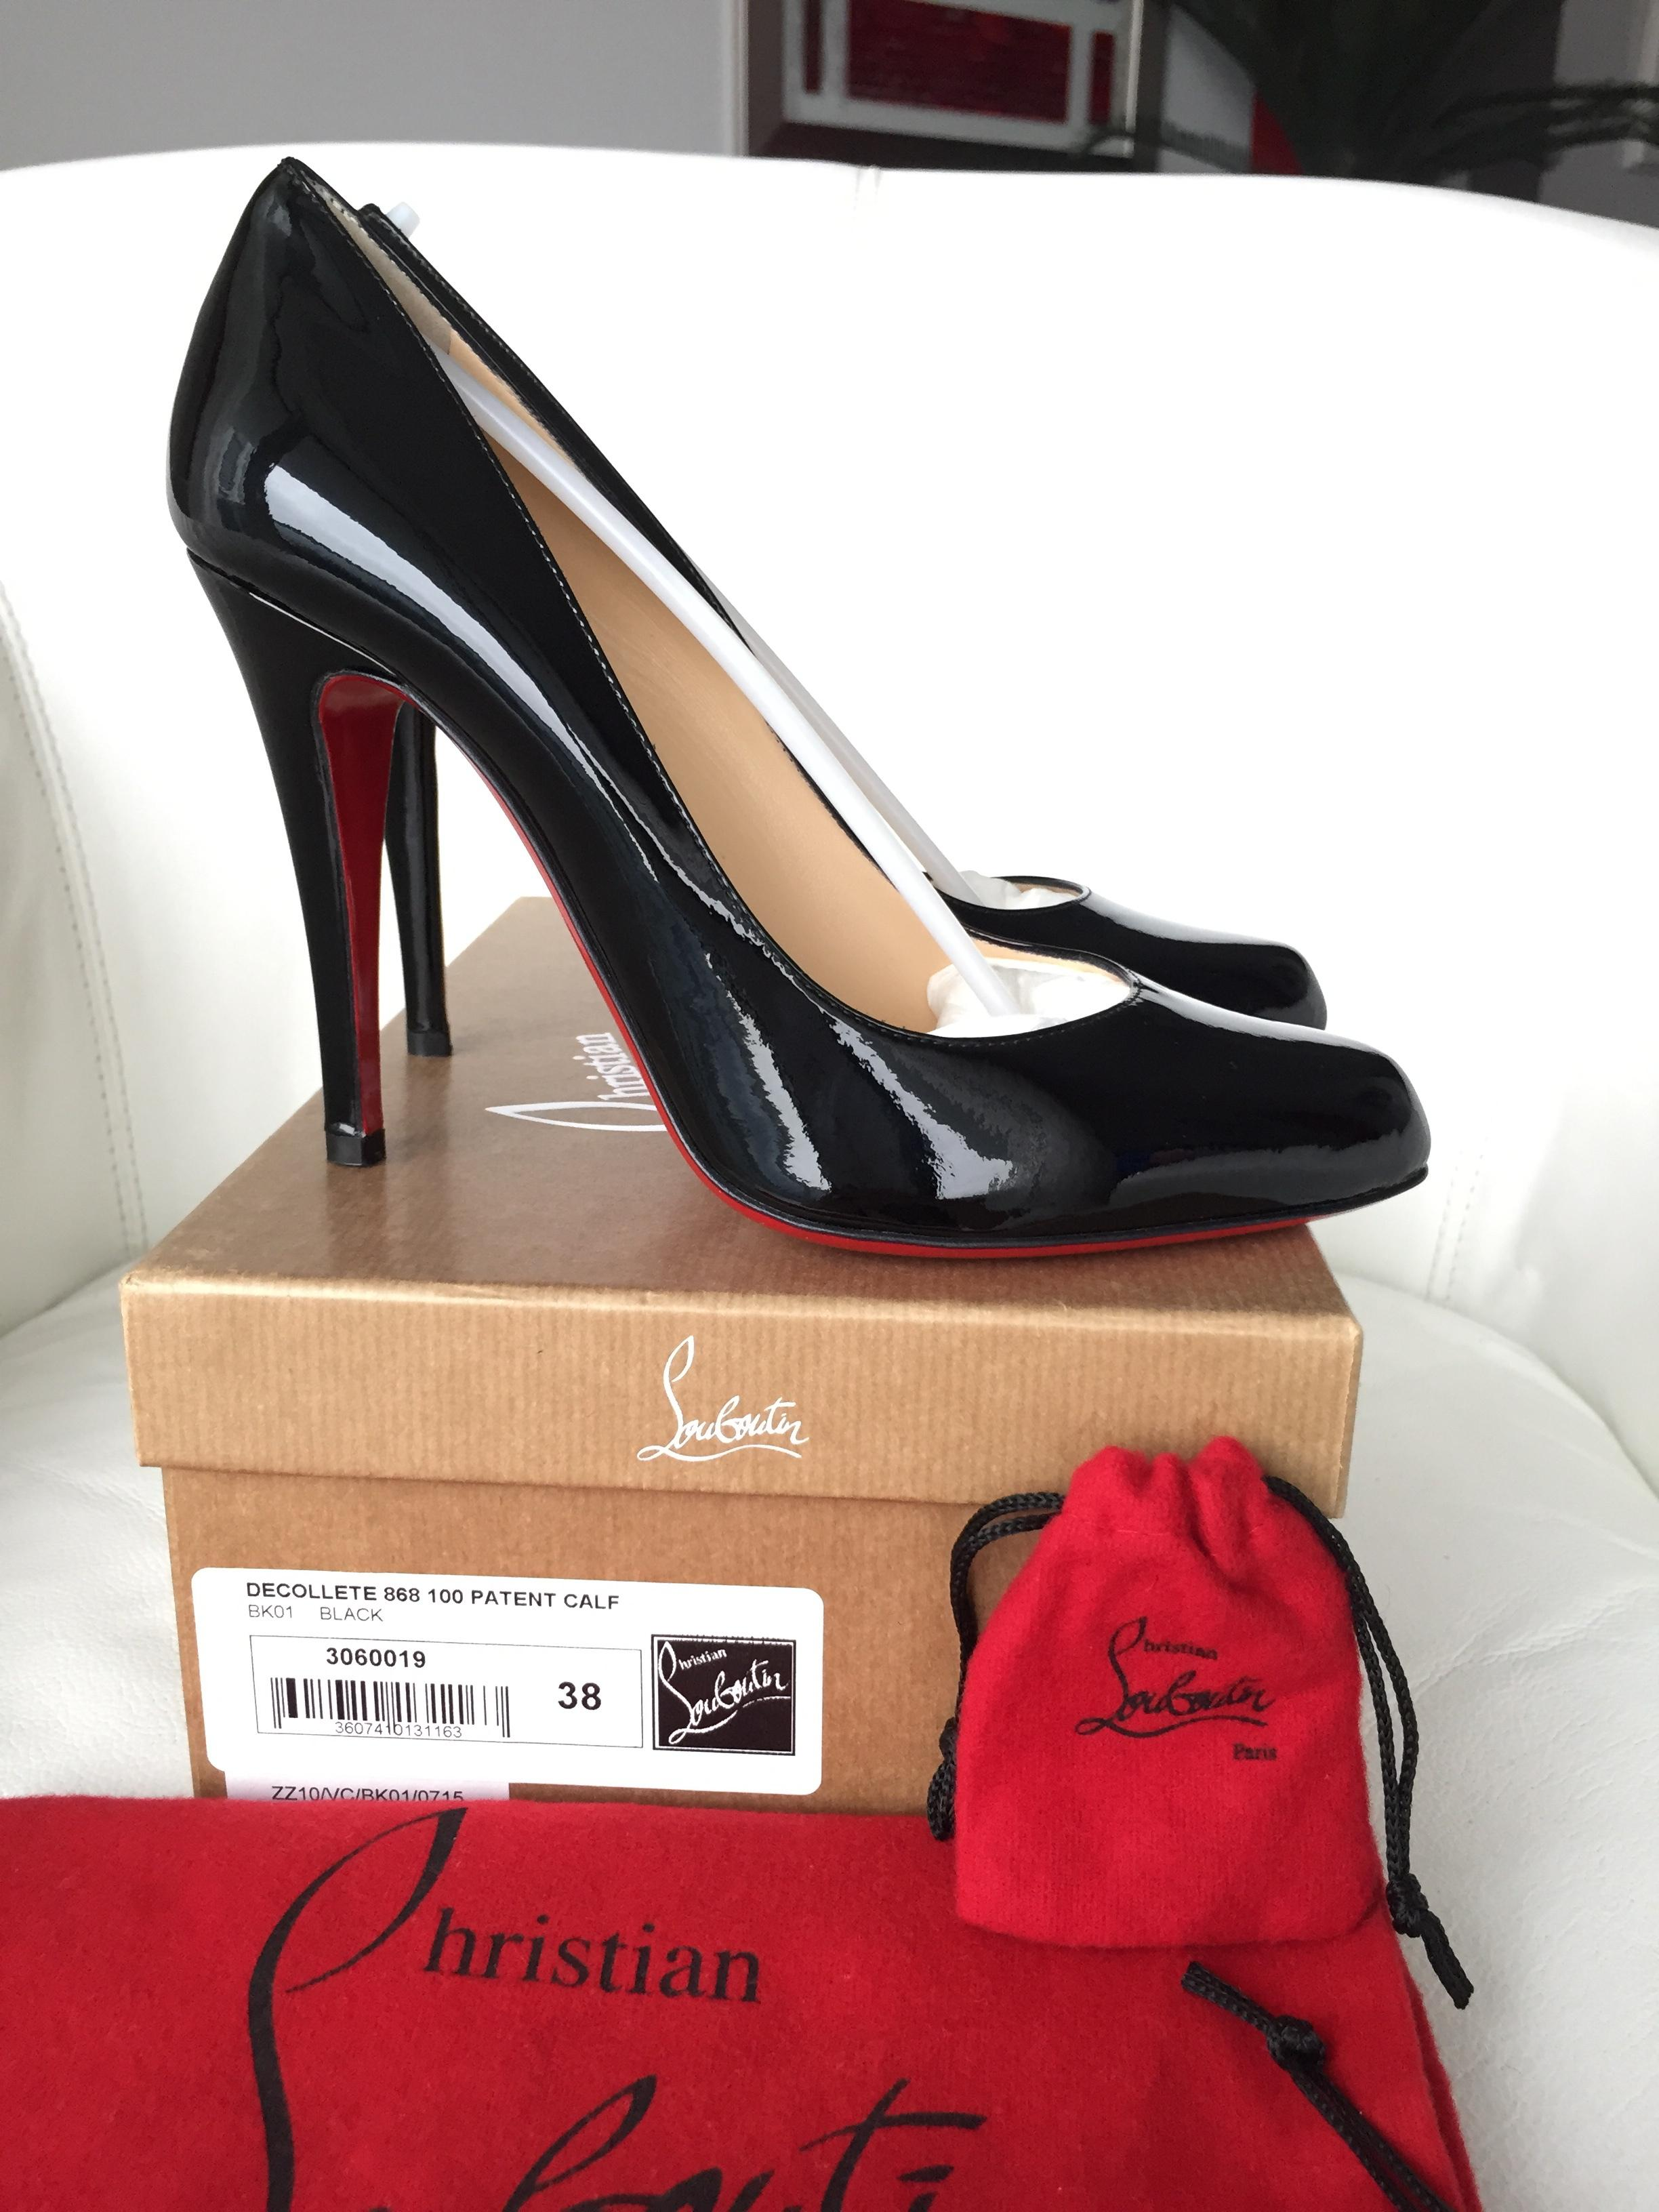 Christian Louboutin Black Decollete 100 Patent Leather Pumps Size US 8 Regular (M, B)